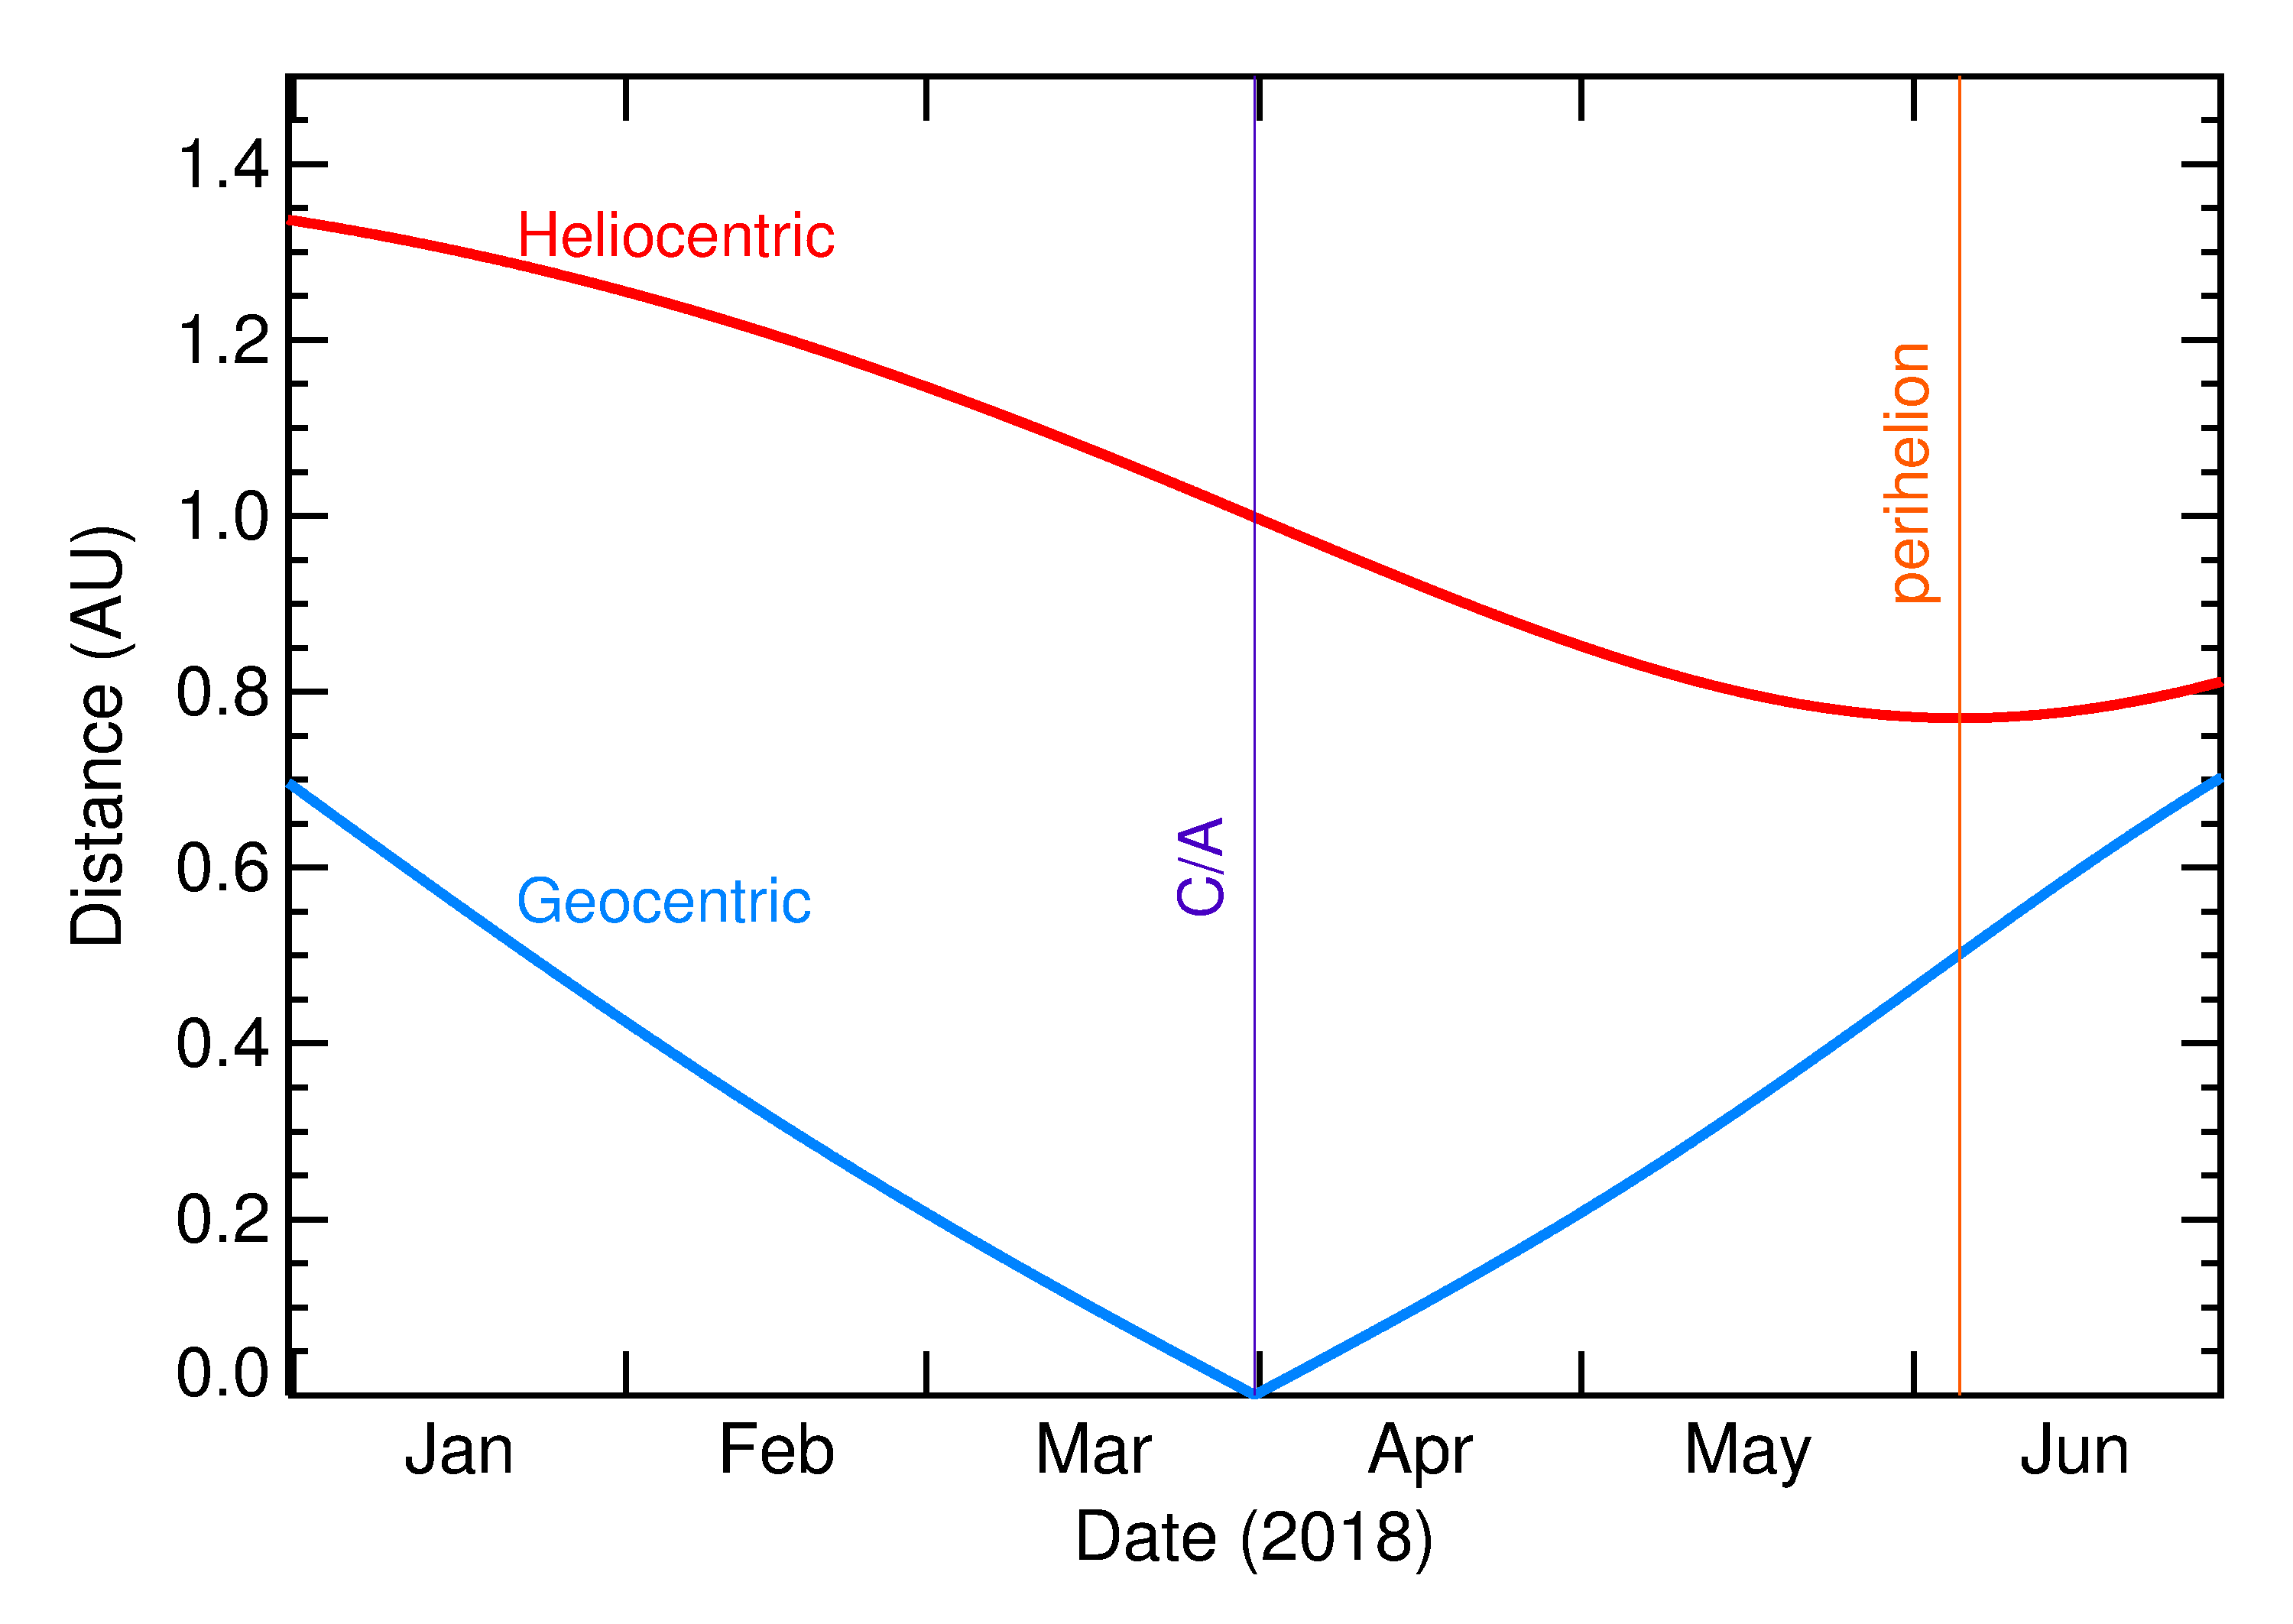 Heliocentric and Geocentric Distances of 2018 FK5 in the months around closest approach